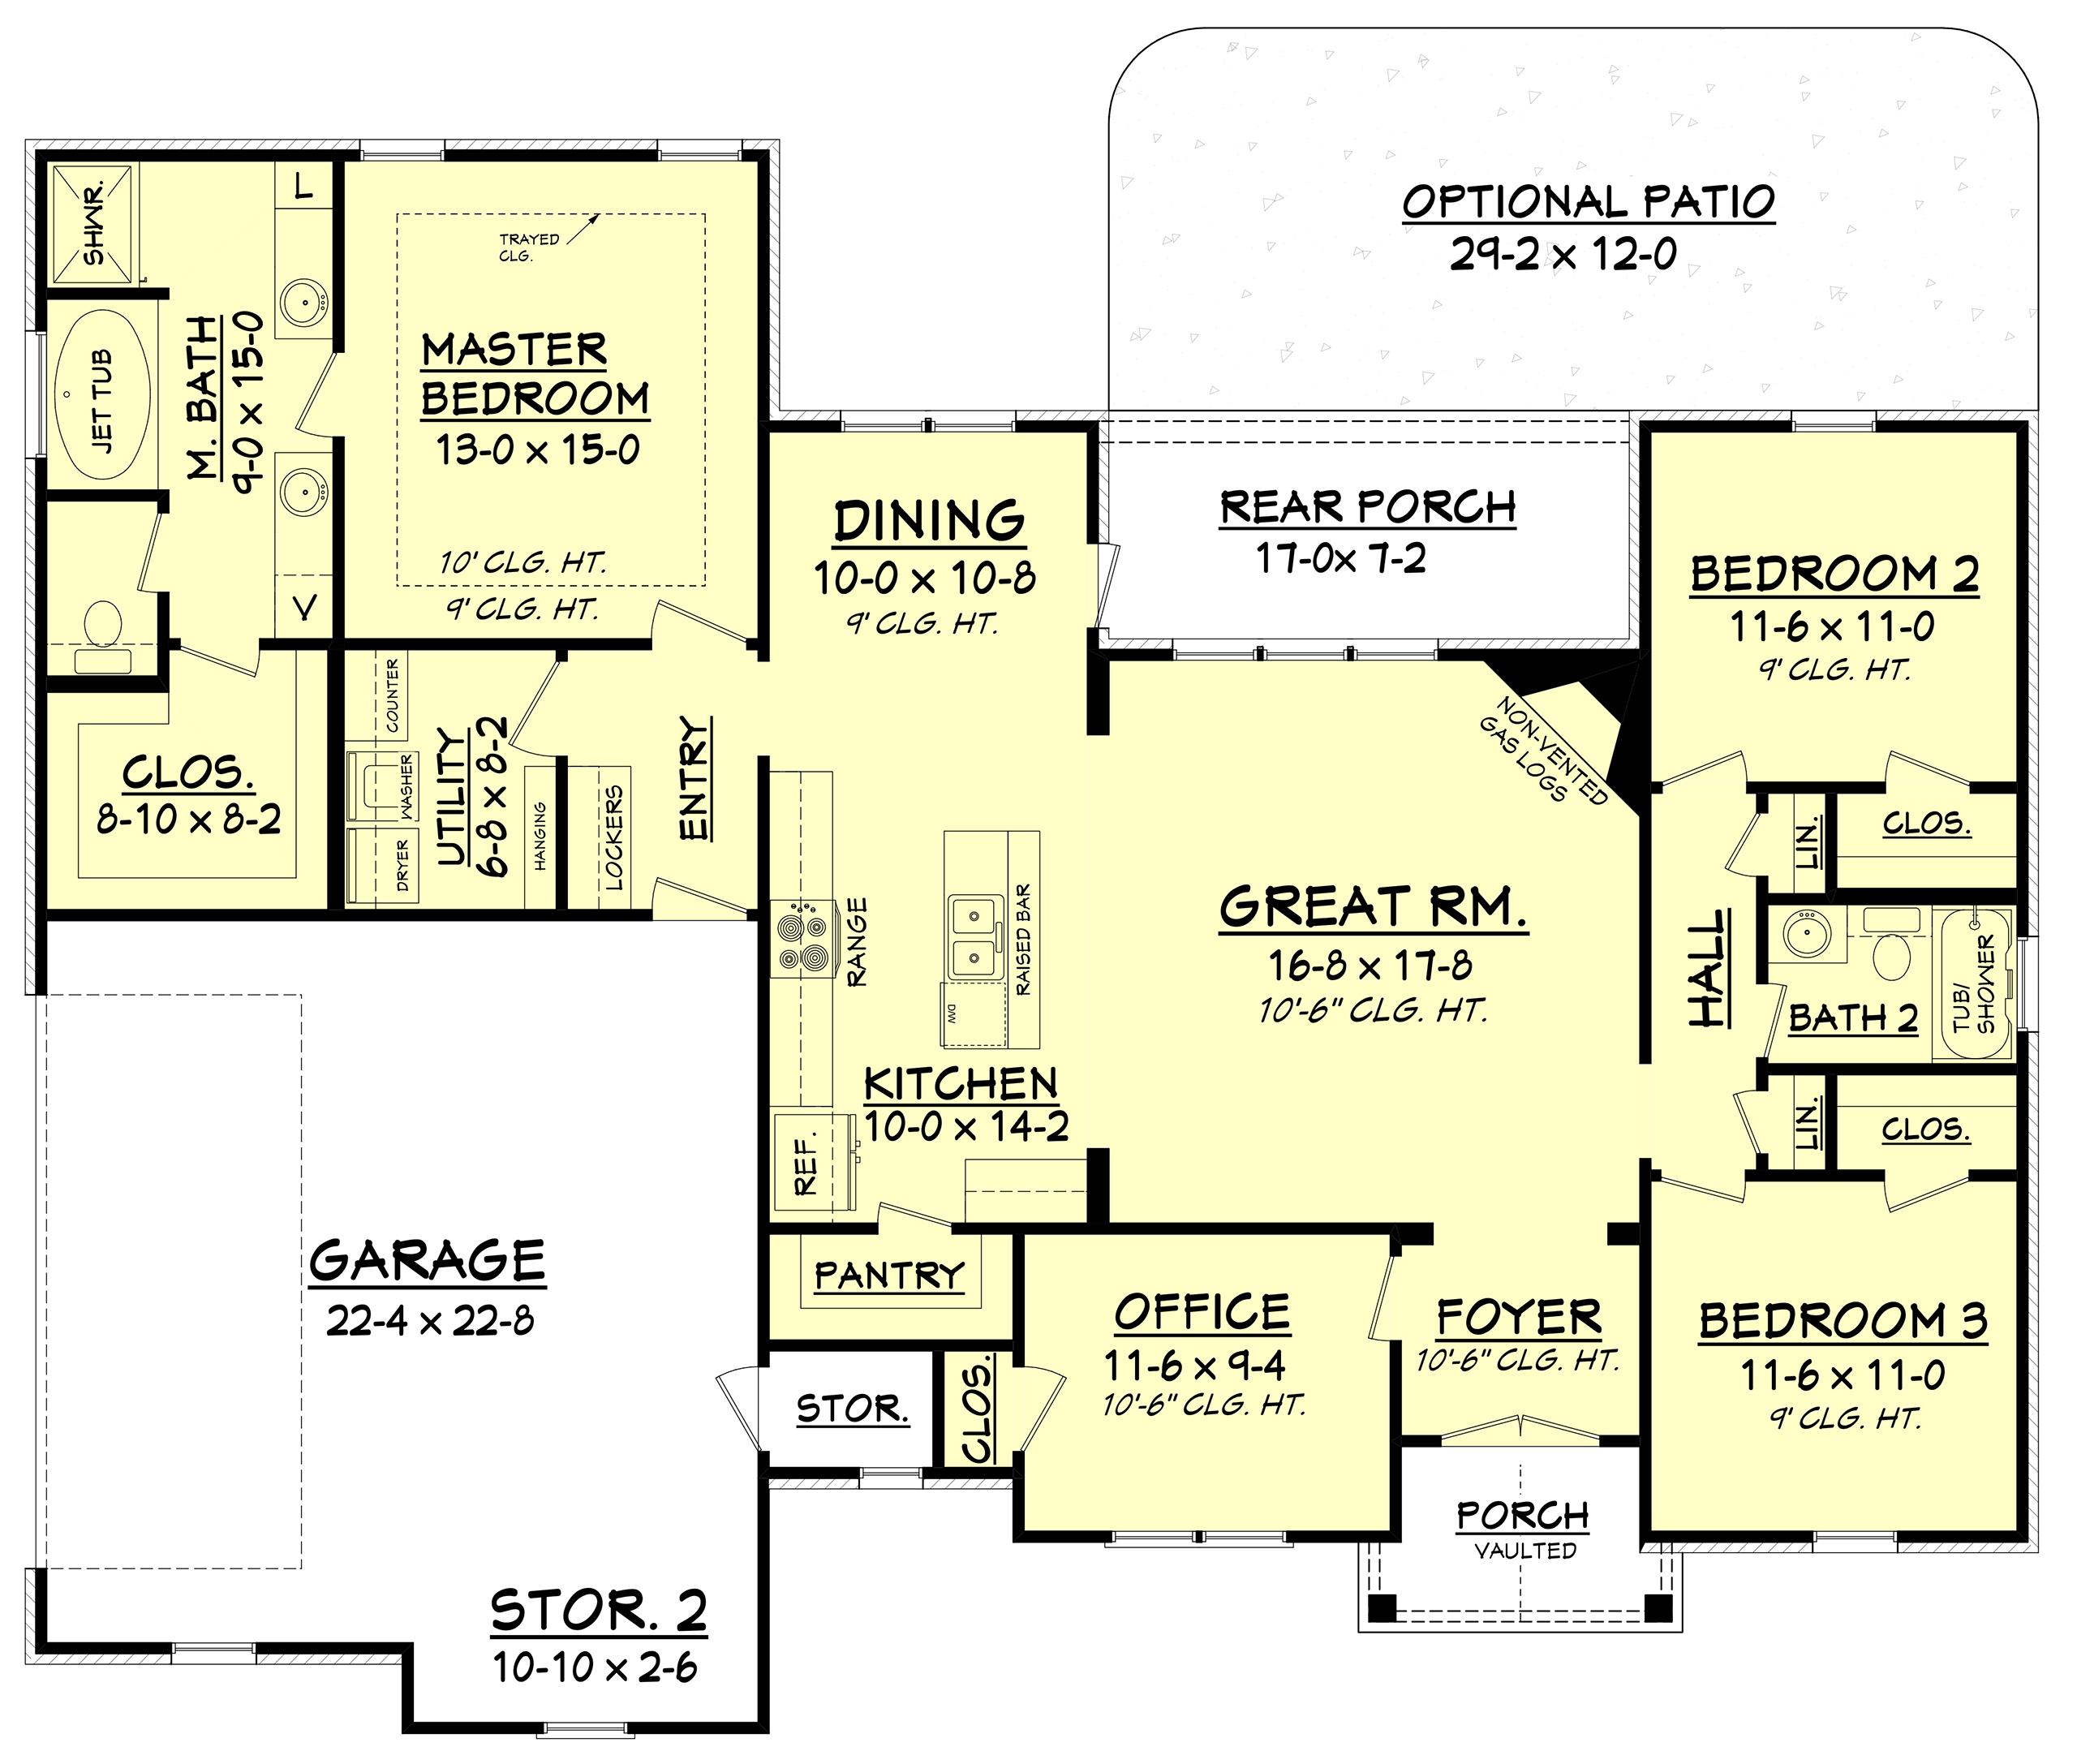 House plan 142 1075 3 bdrm 1 769 sq ft traditional home House plans with 2 bedrooms in basement